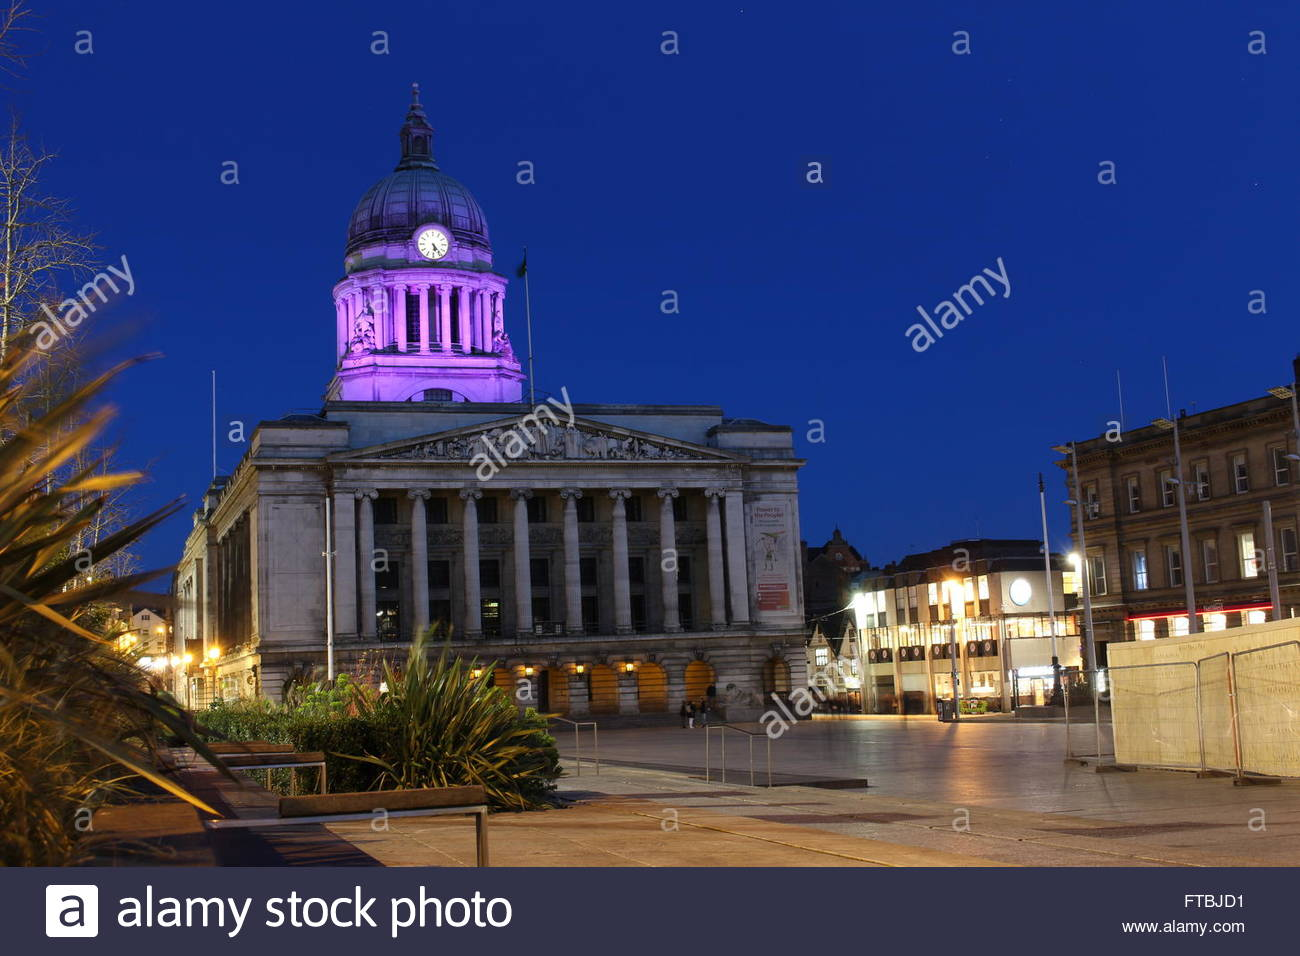 Nottingham Council House lit up with purple lights in peaceful mid-evening city scene. - Stock Image